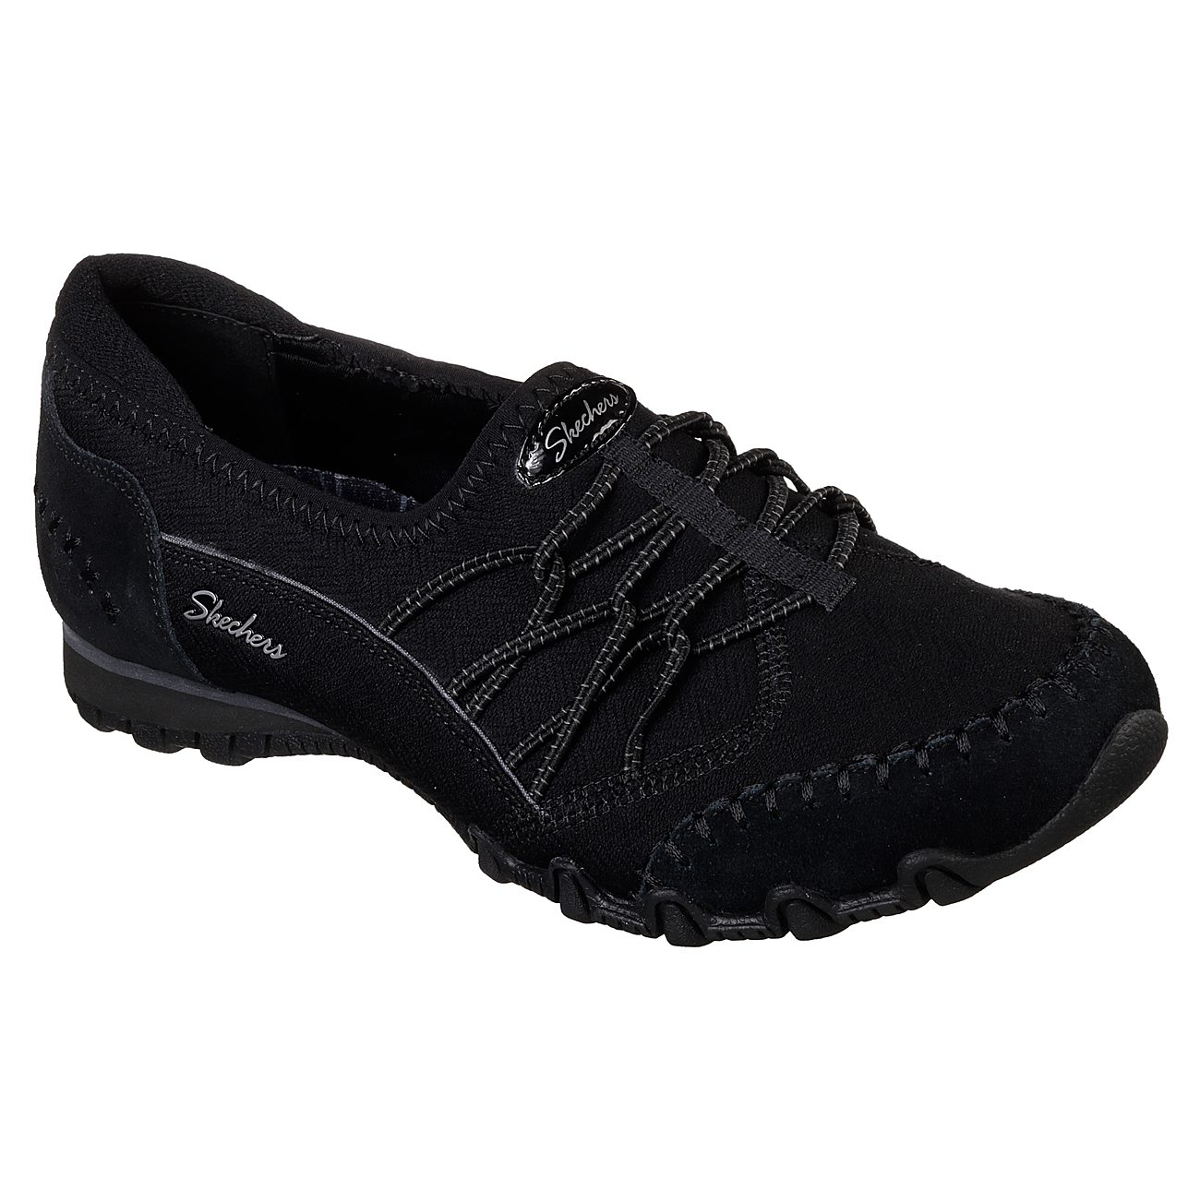 Skechers Women's Relaxed Fit: Bikers Casual Slip-On Shoes - Black, 8